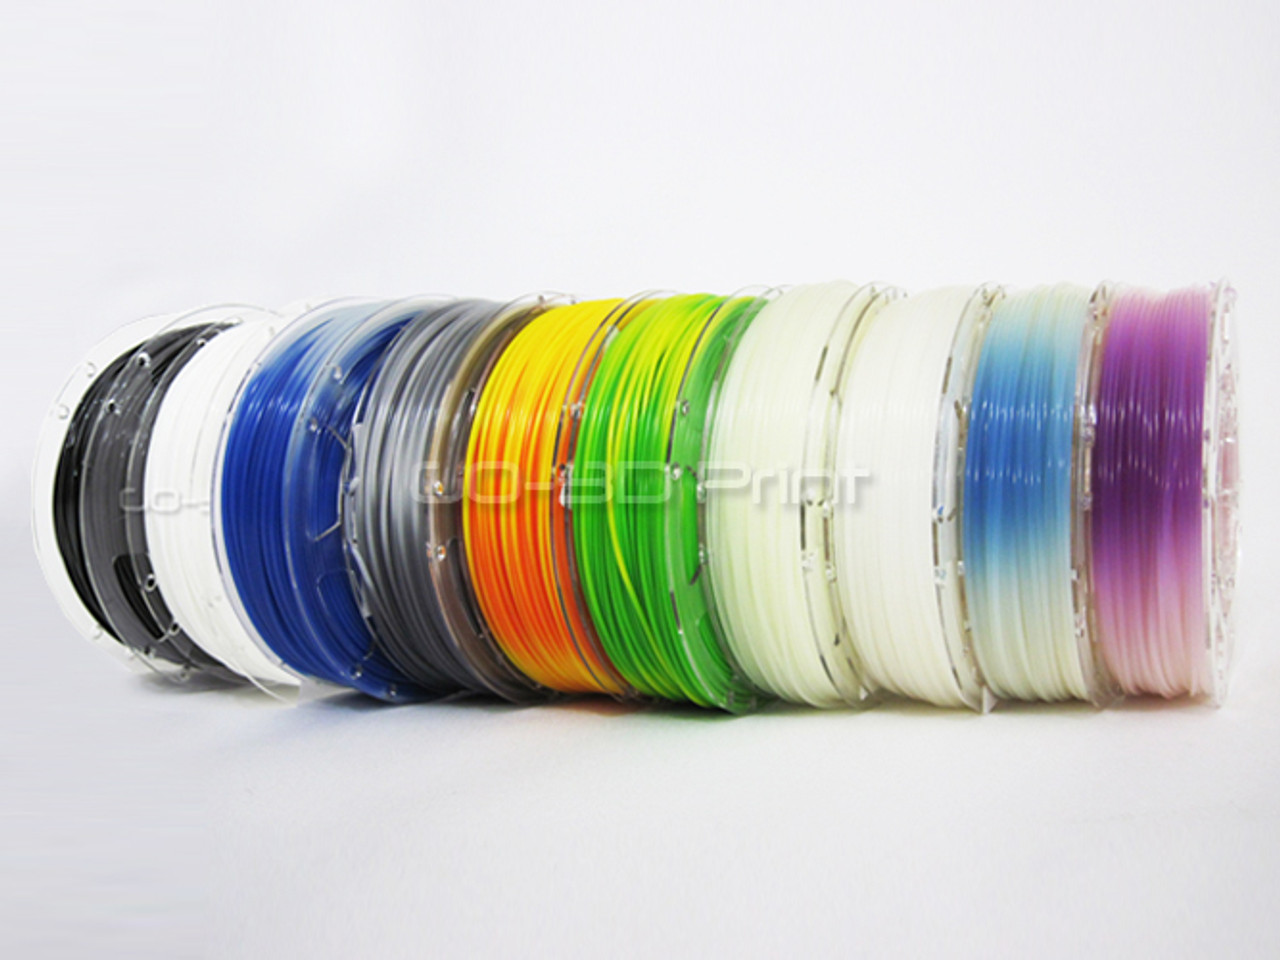 Temperature Color Changing Green to Yellow PLA 3D Printing Filament 1.75mm 225g